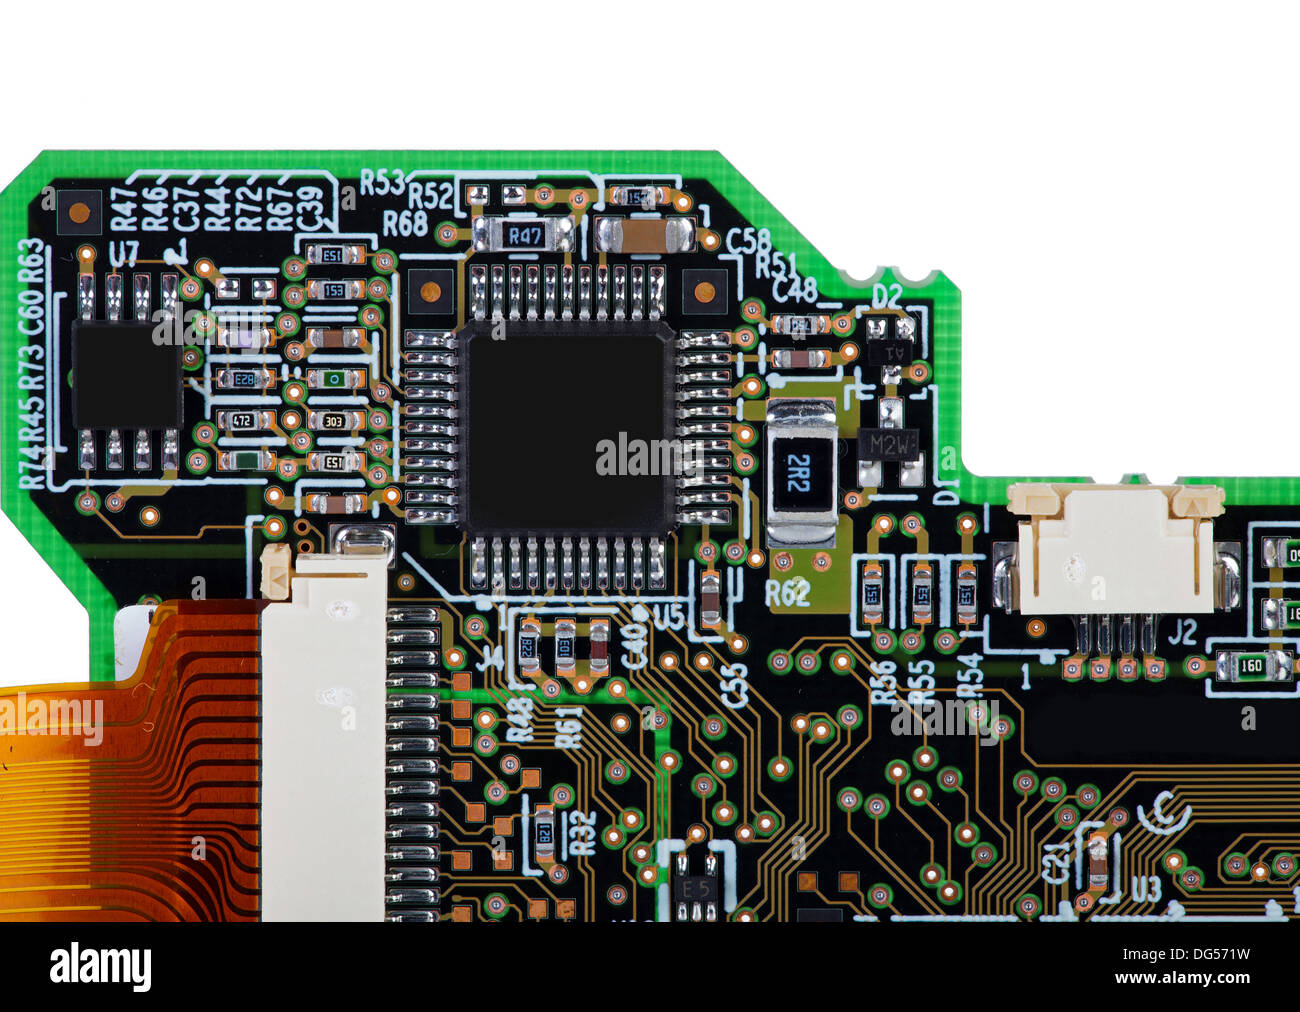 No Electronic Devices Stock Photos Canary Circuit View Of An Assembled Board With Smd Components Isolated In Front White Background